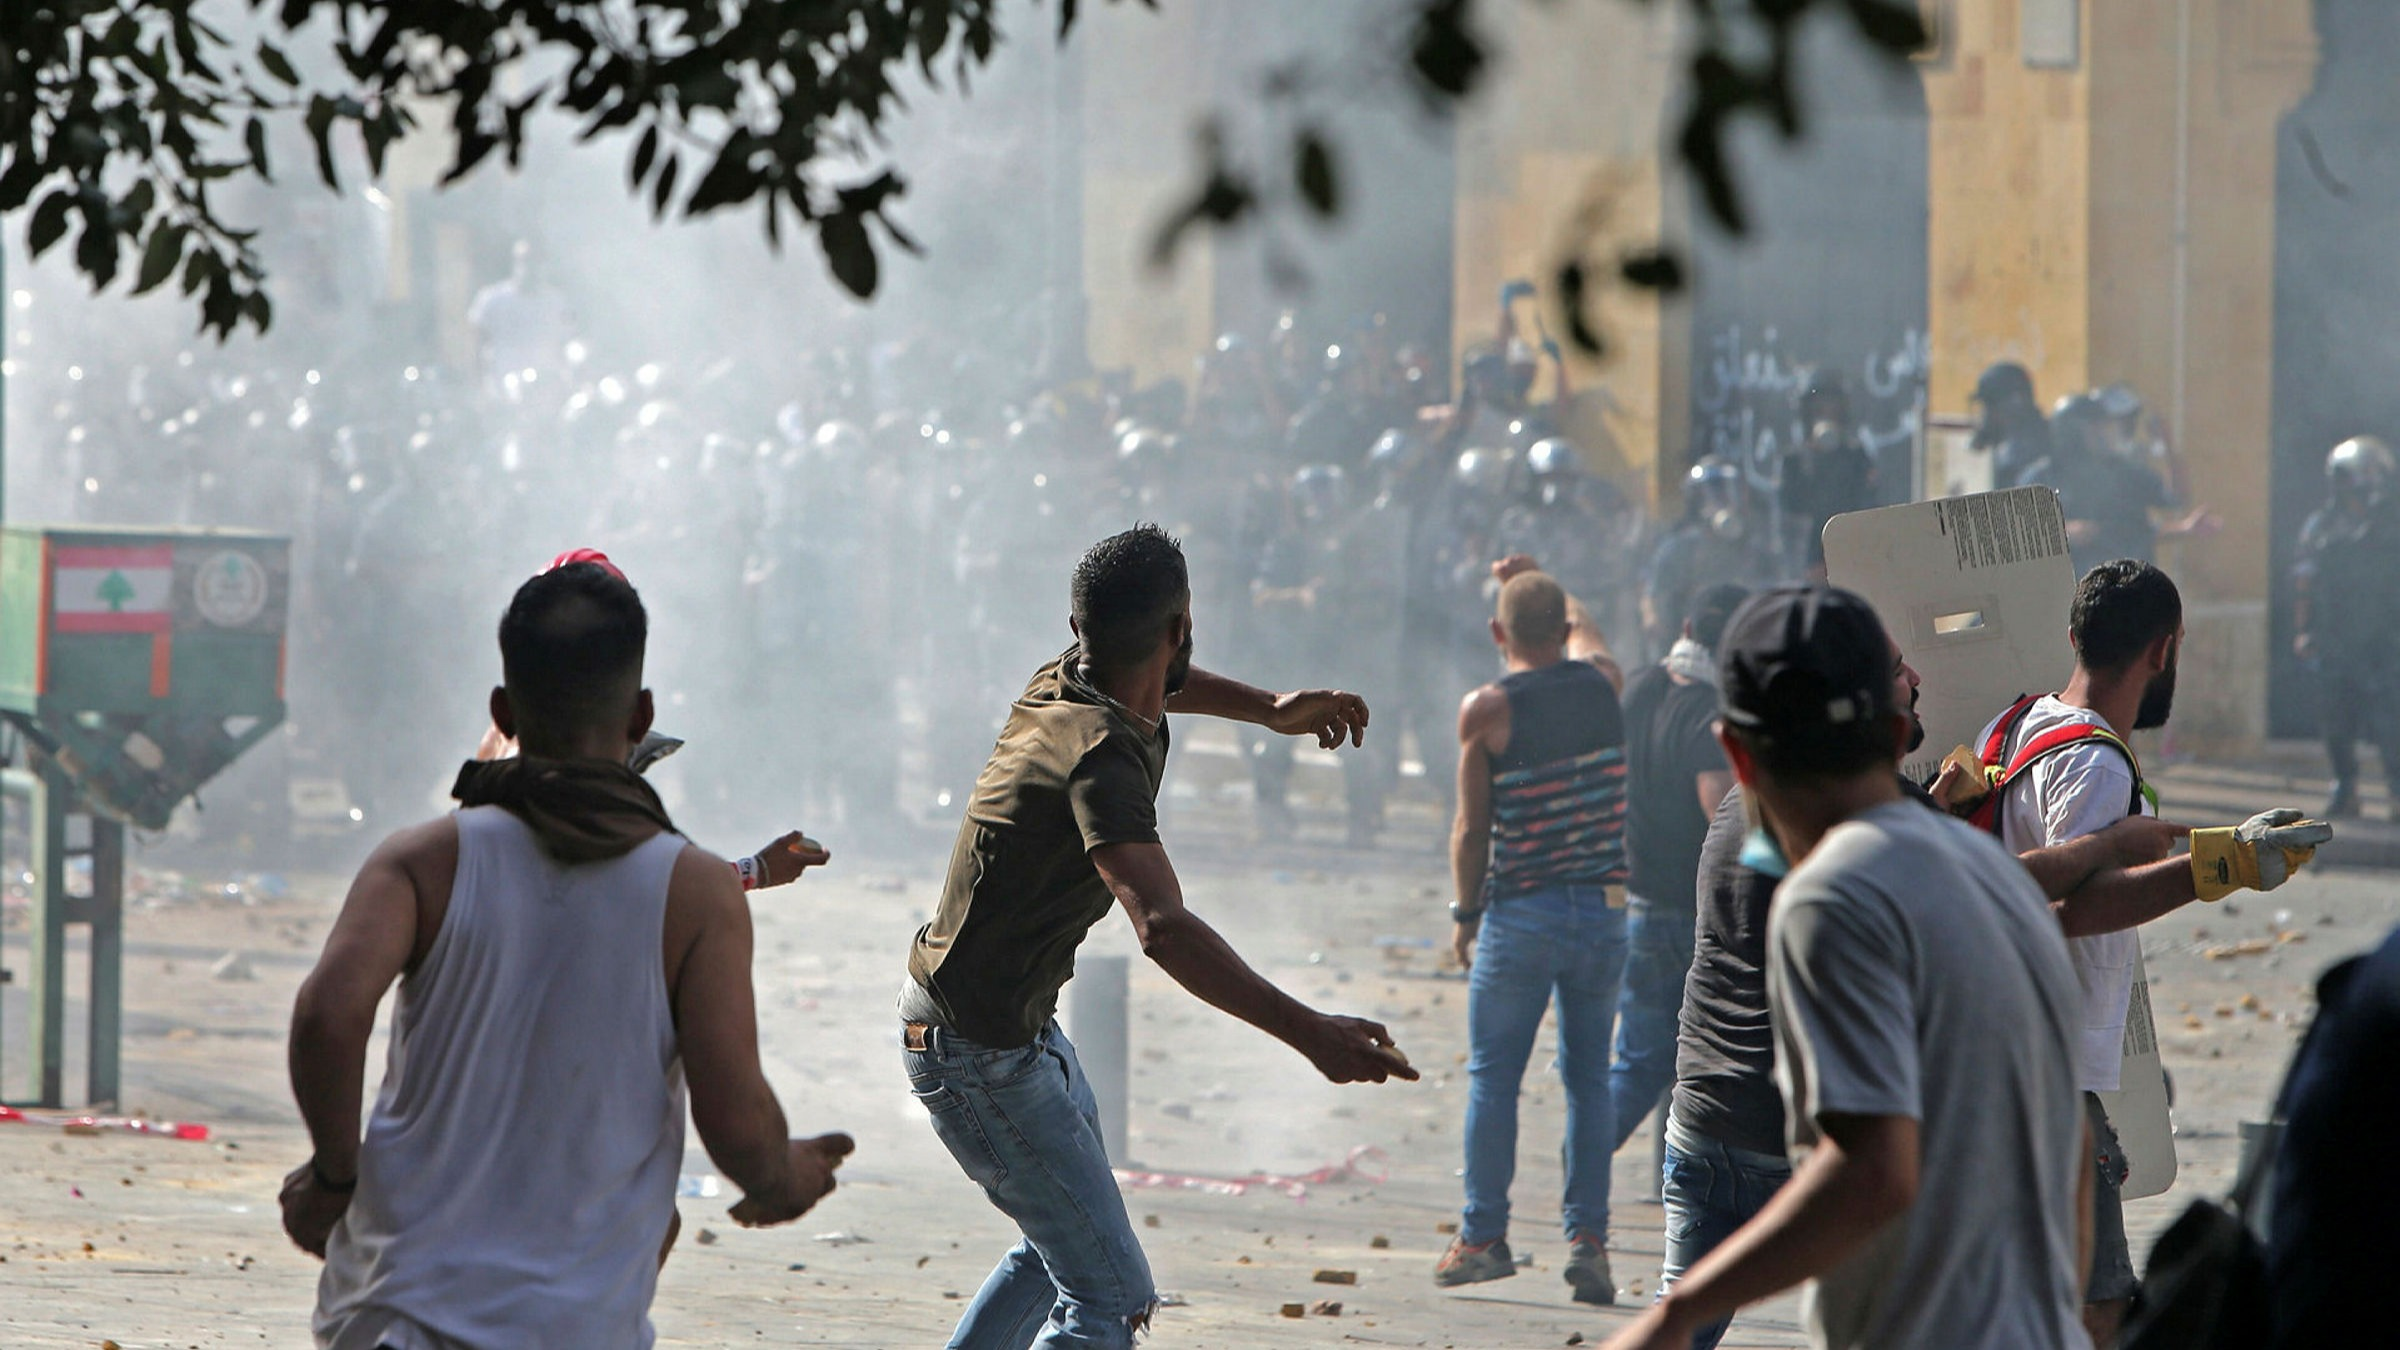 Protests turn violent in Beirut as anger against leaders grows | Financial  Times